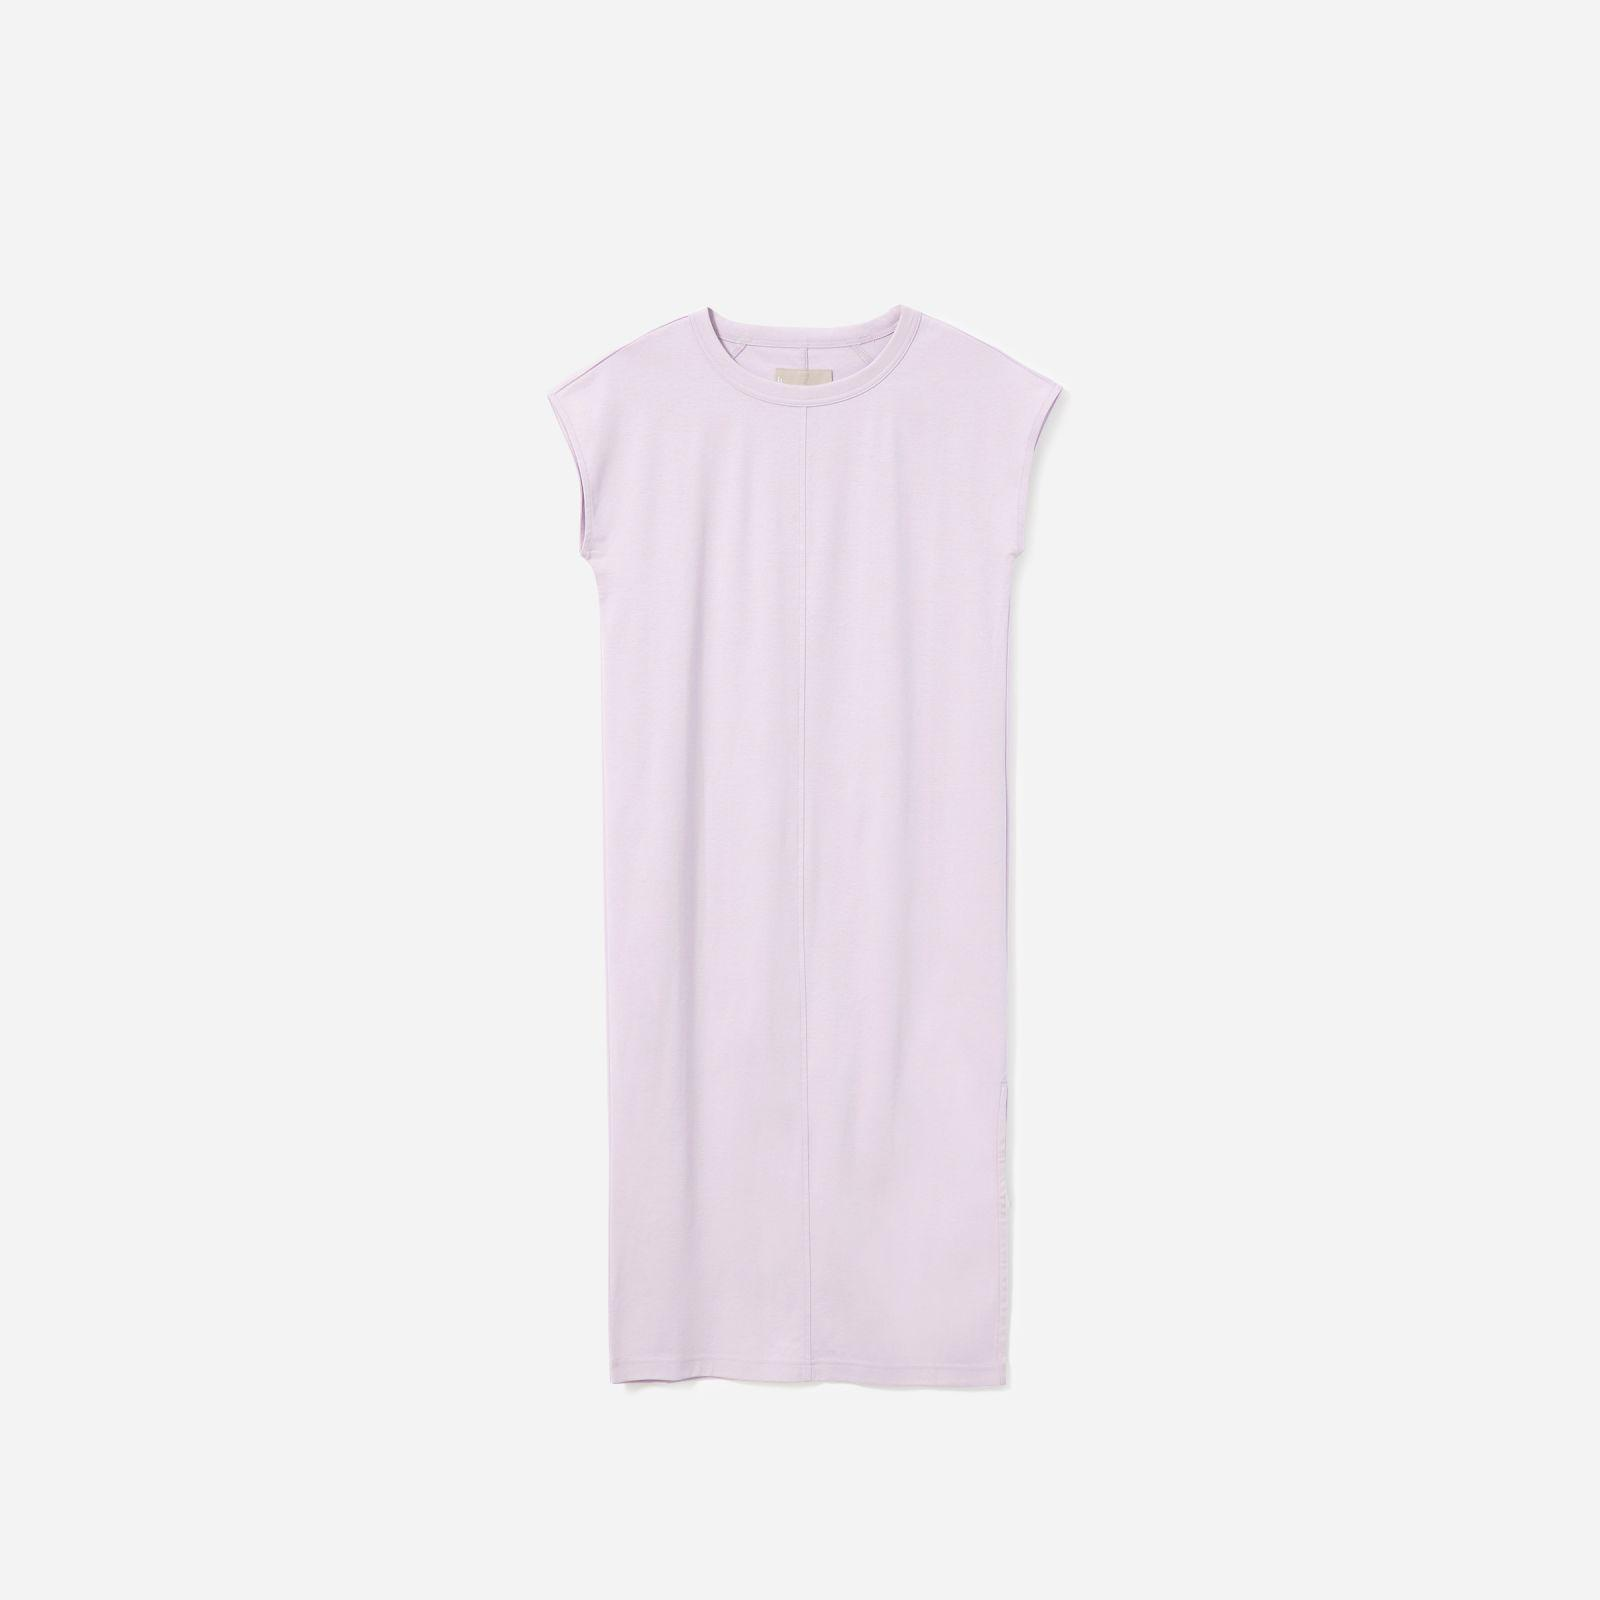 069b778514365f Everlane The Luxe Cotton Side-slit Tee Dress in Purple - Lyst